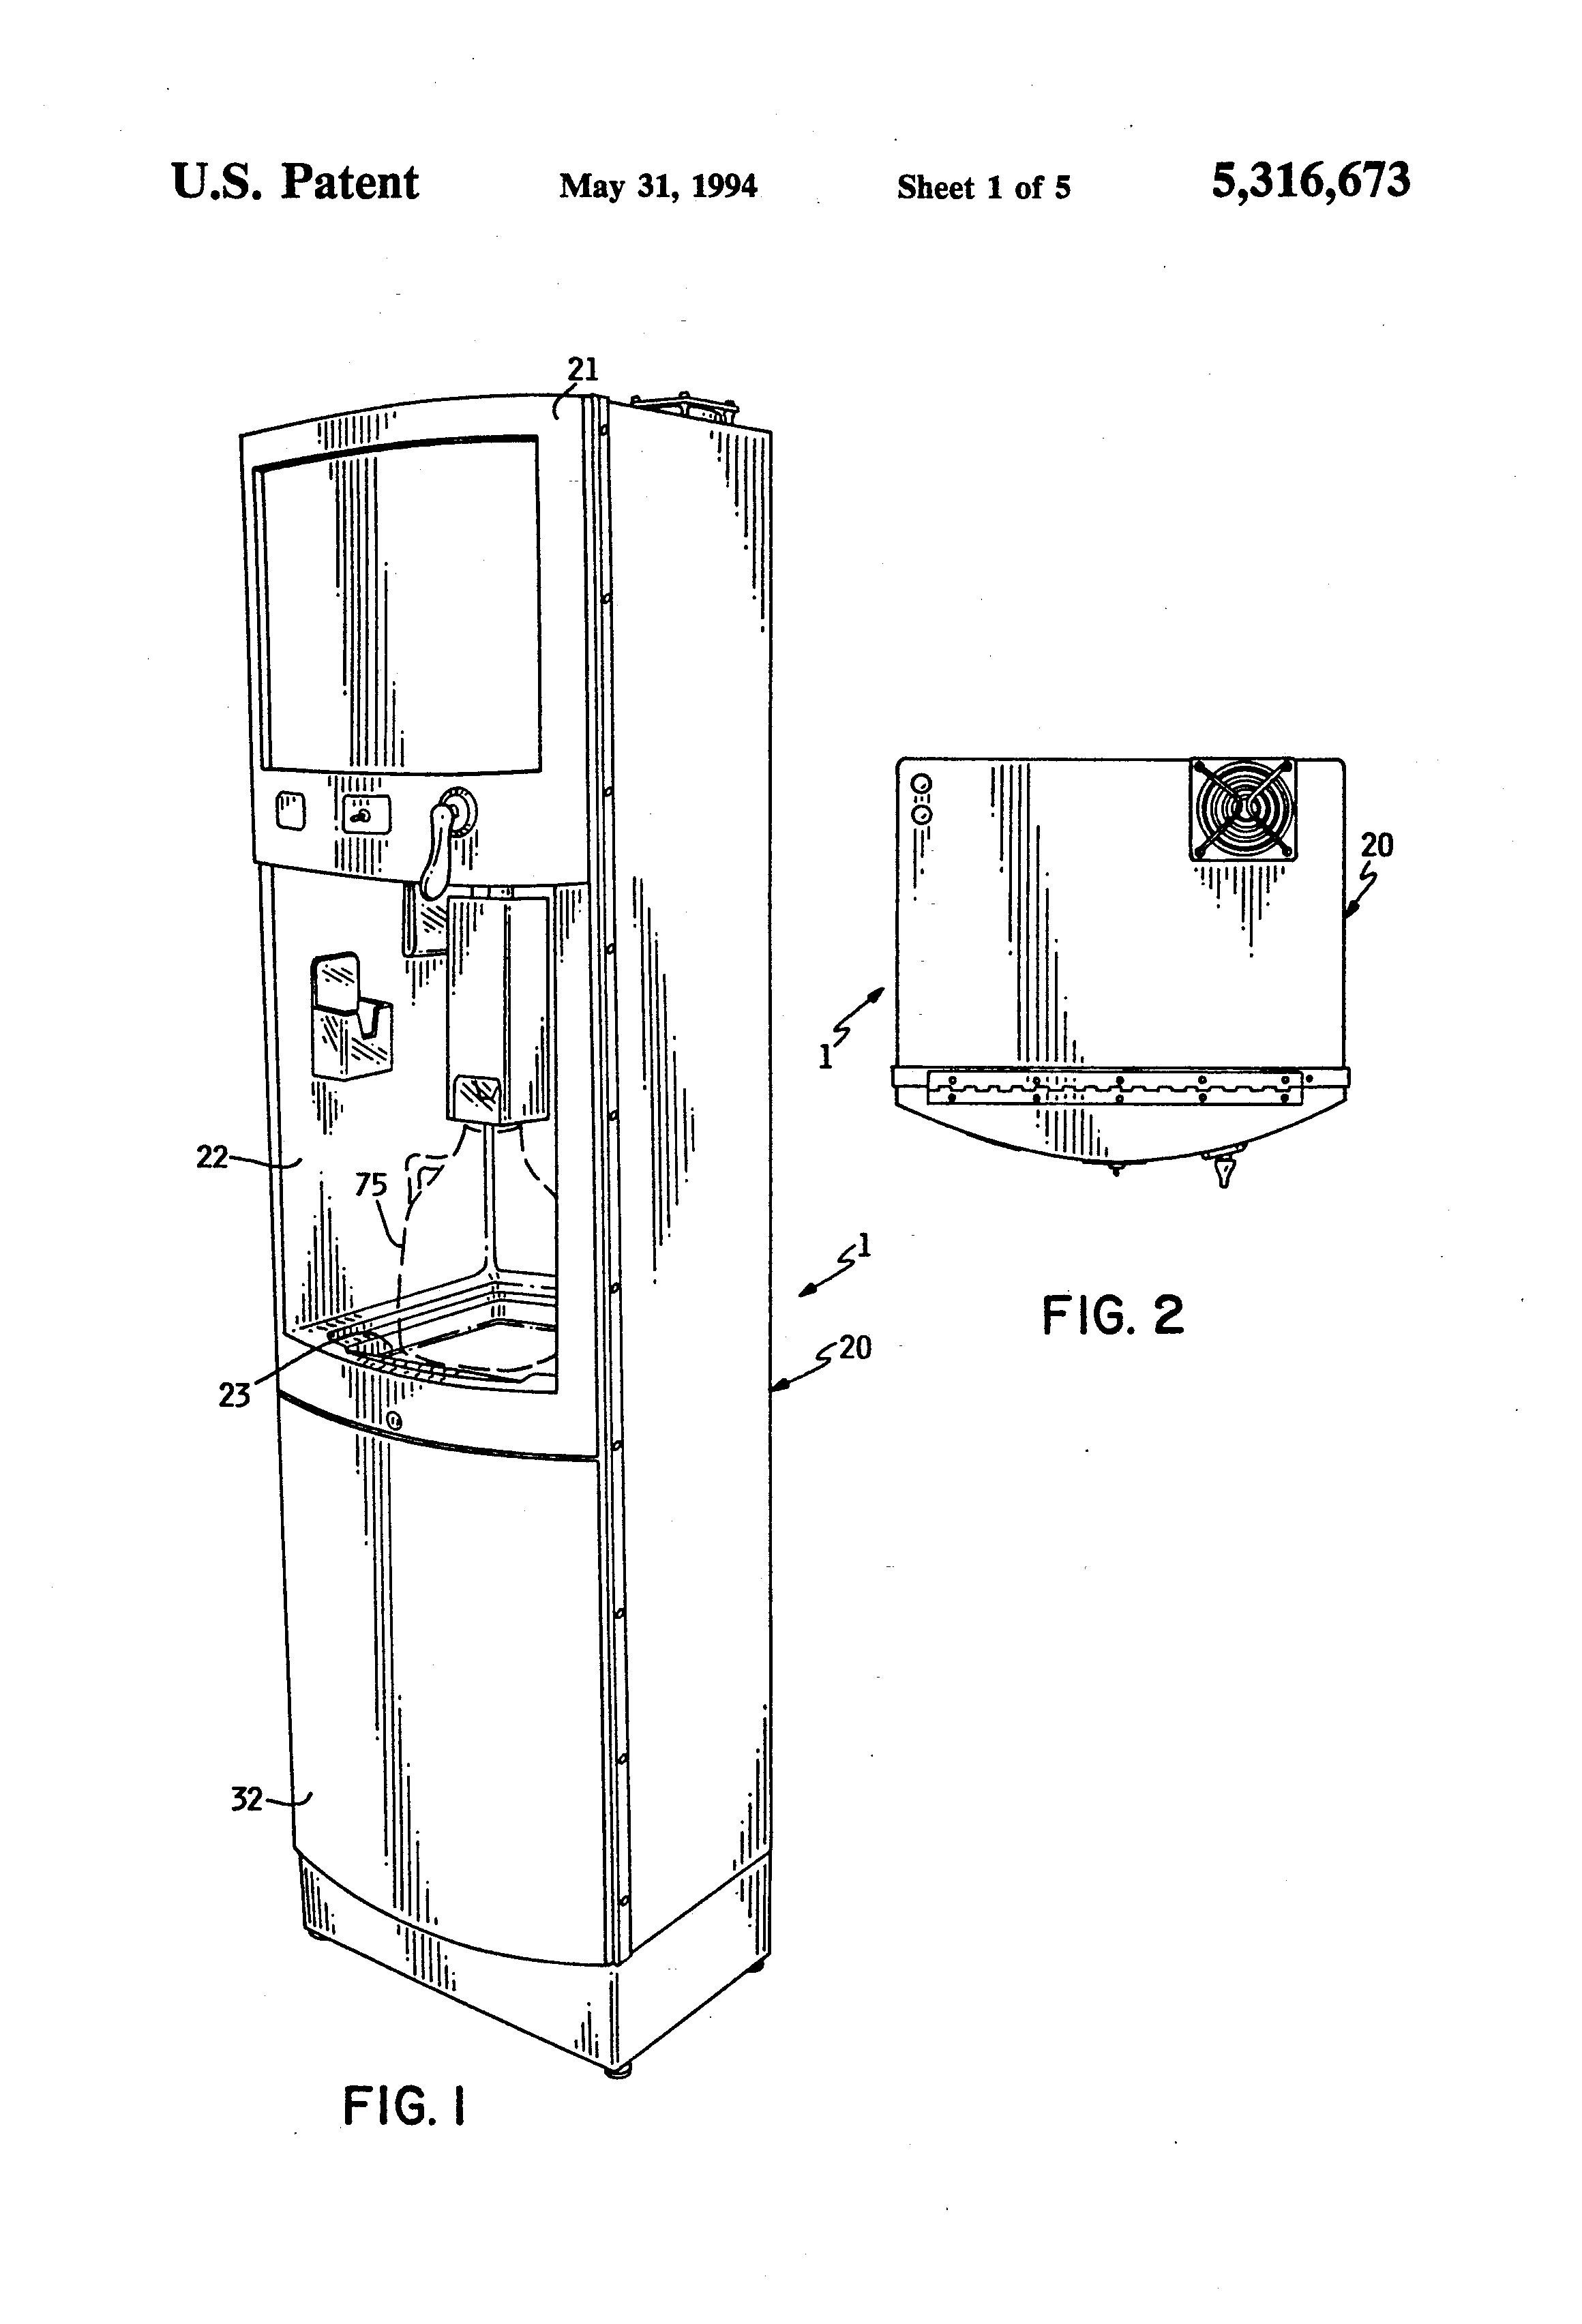 water cooler diagram patent us5316673 - spout assembly for self-service ... #6